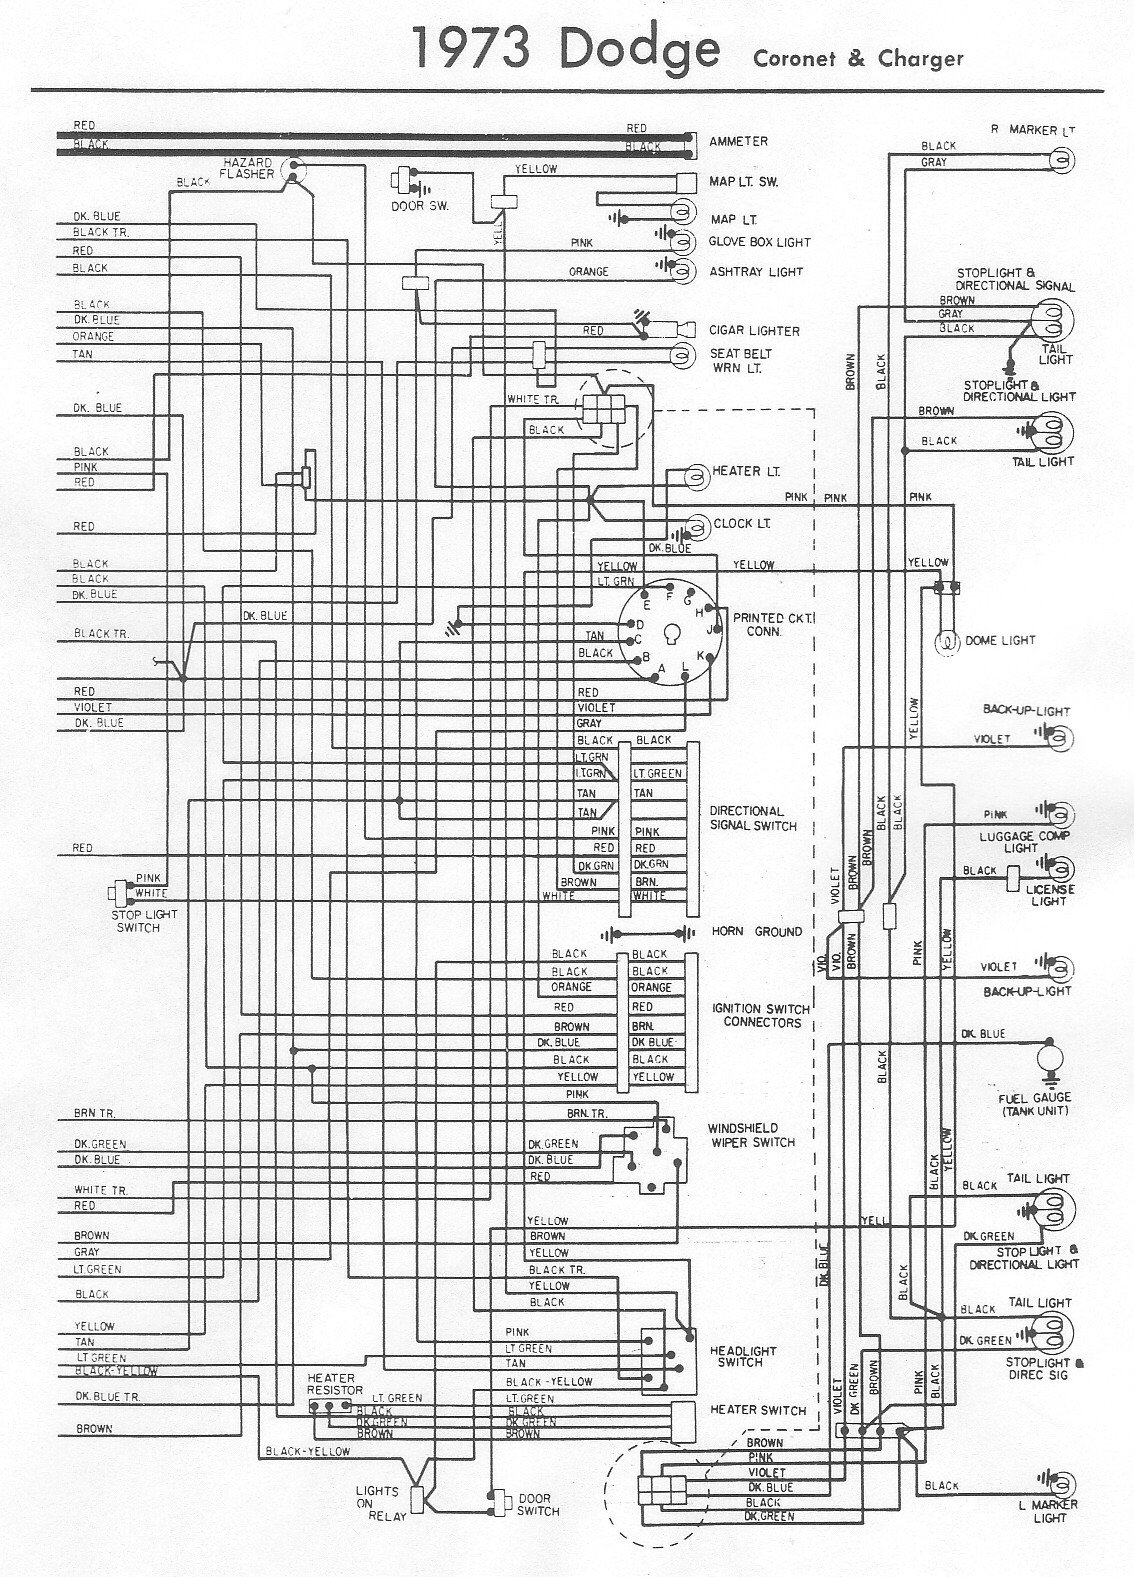 1973 Dodge Charger Wiring Diagram Schematic 2019 2012 Challenger I Have A With 440 Magnum Recently Ignition